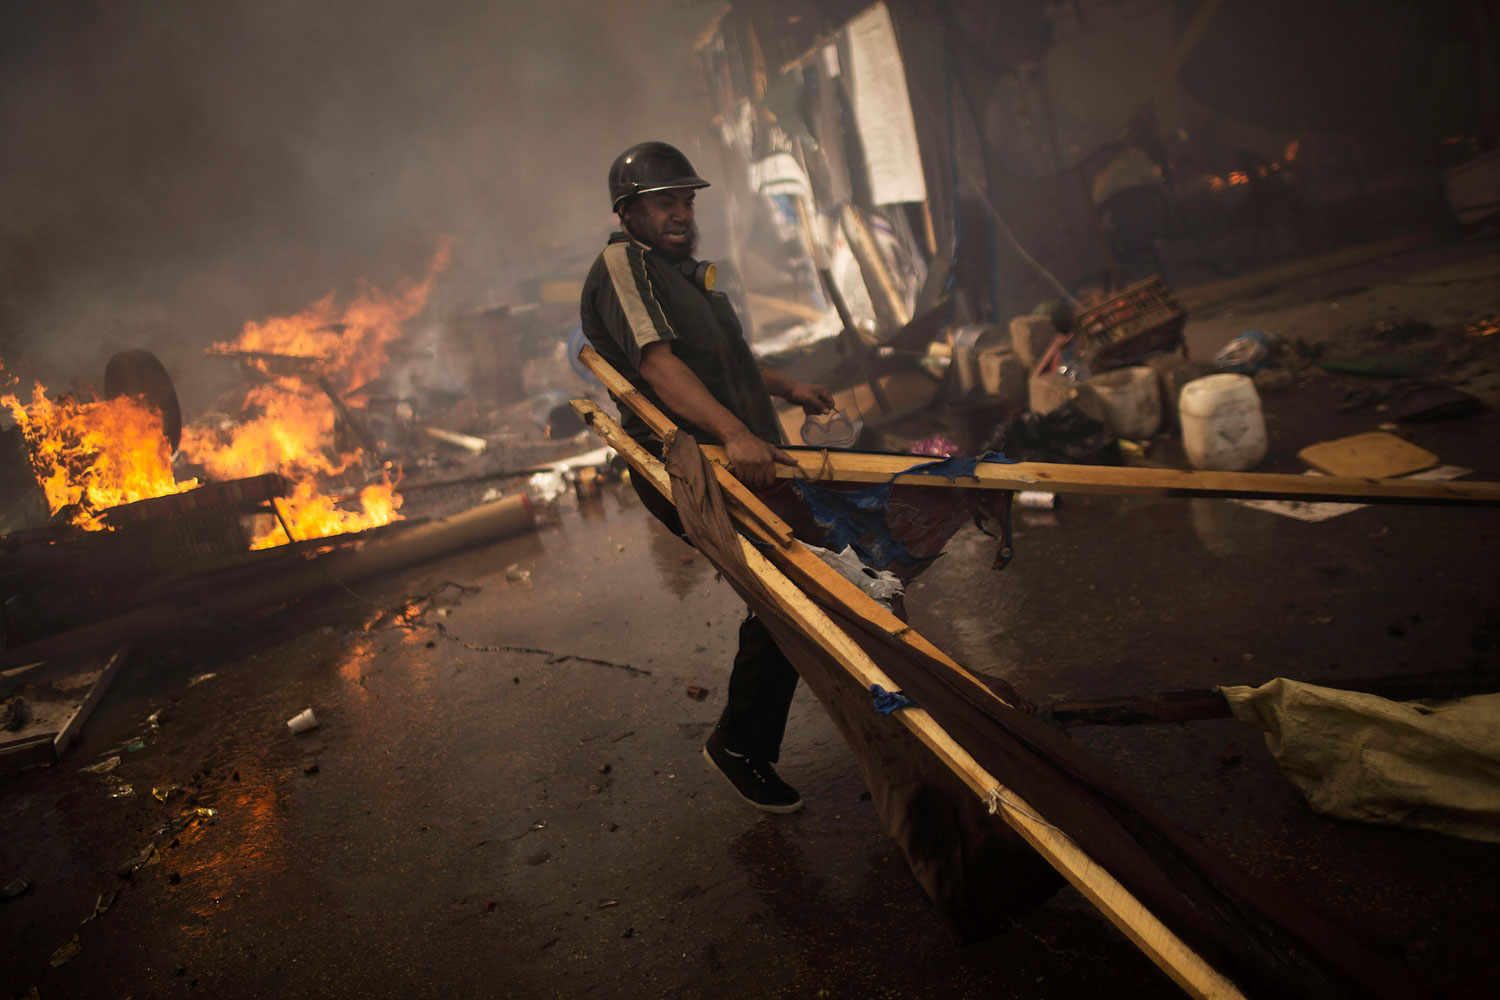 A supporter of ousted Islamist President Mohammed Morsi carries woods to burn in a fire barricade at the sit-in at Rabaa Al-Adawiya square in Cairo's Nasr City district, Aug. 14, 2013.